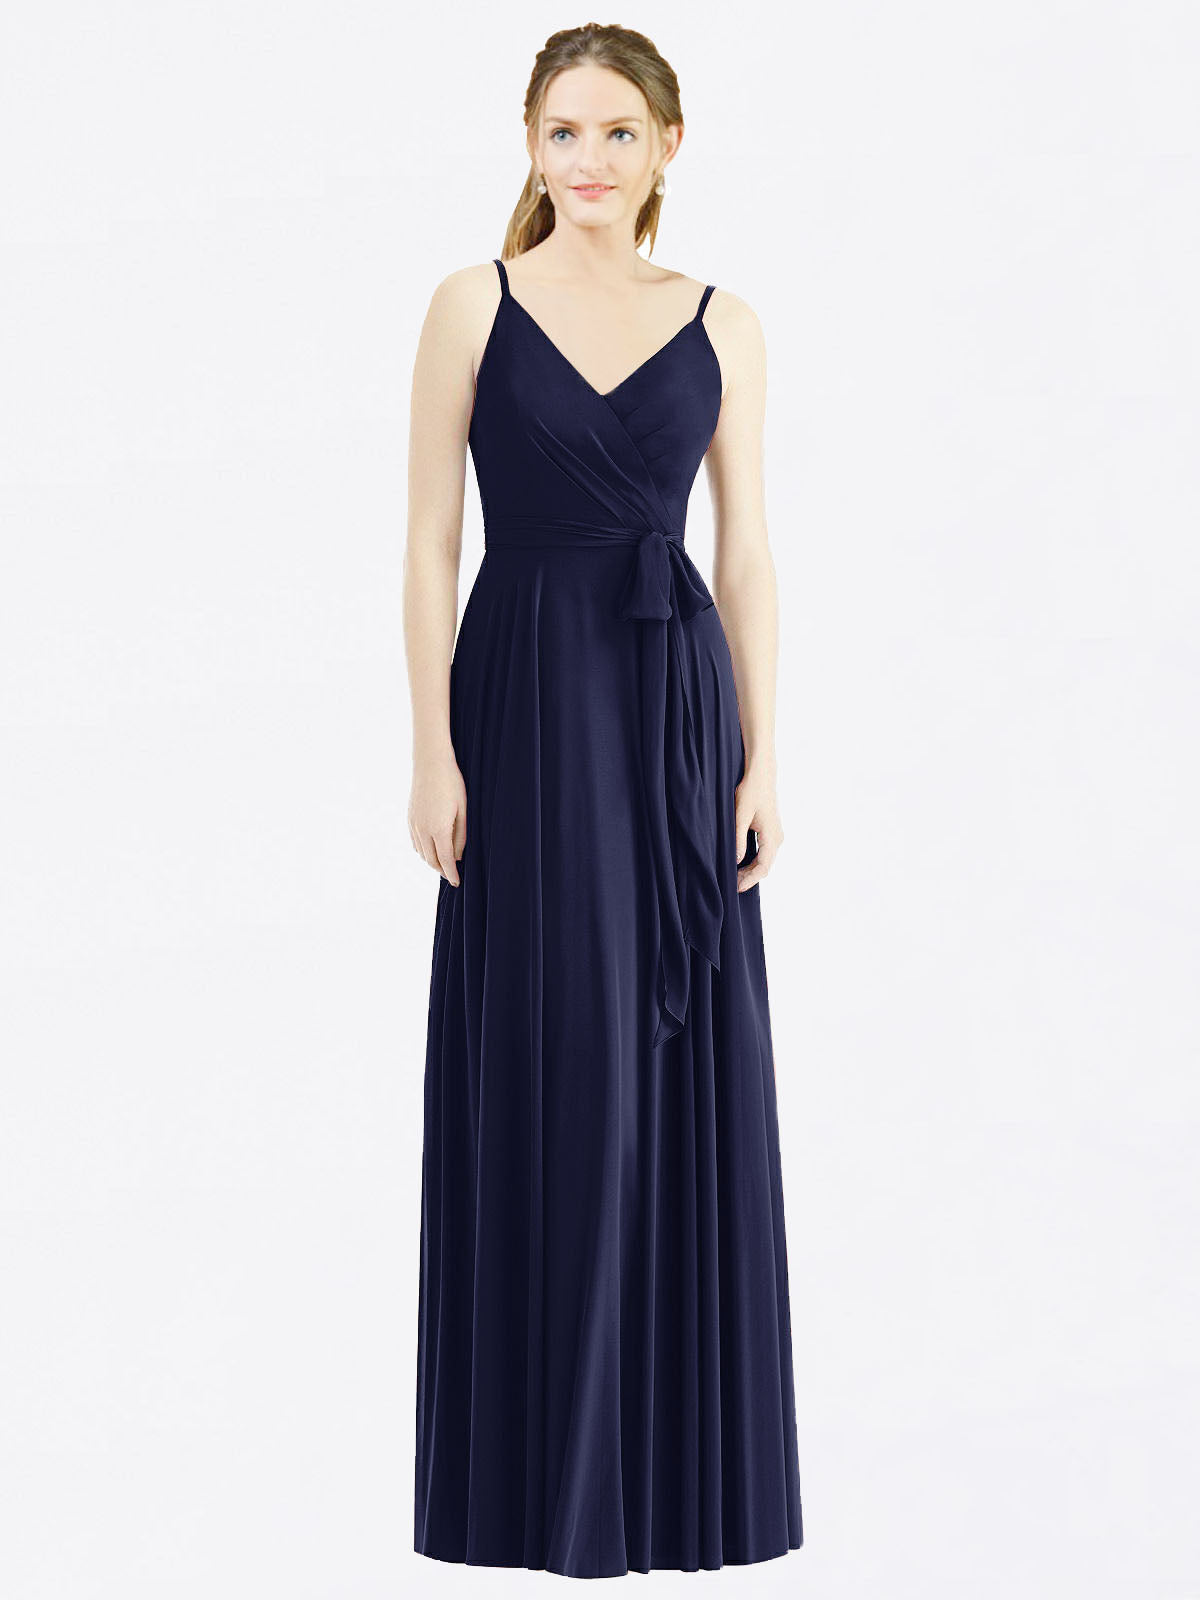 Long A-Line Spaghetti Straps, V-Neck Sleeveless Dark Navy Chiffon Bridesmaid Dress Madilyn